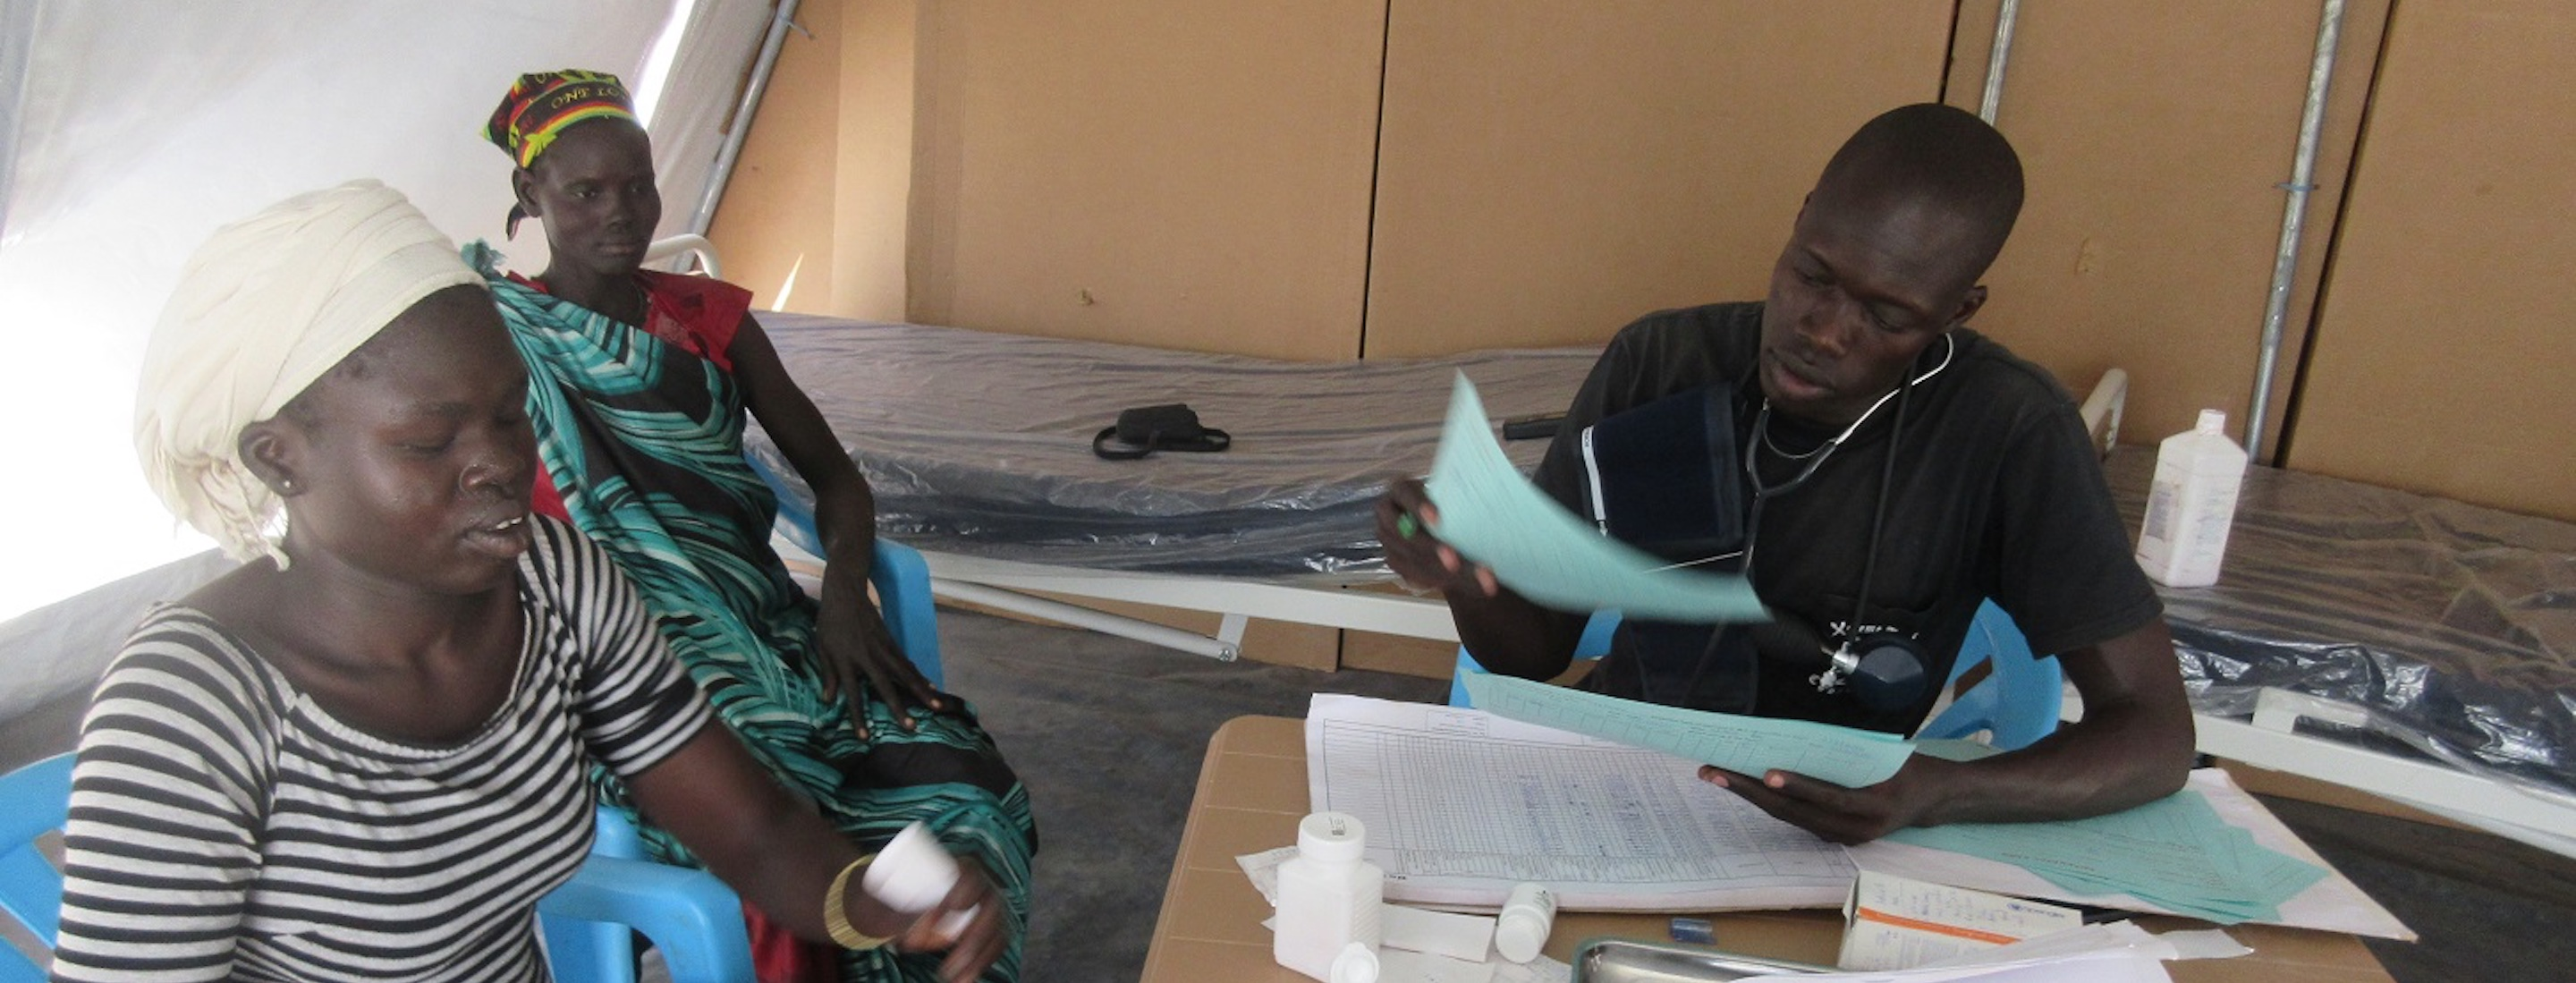 south sudanese doctor with patients